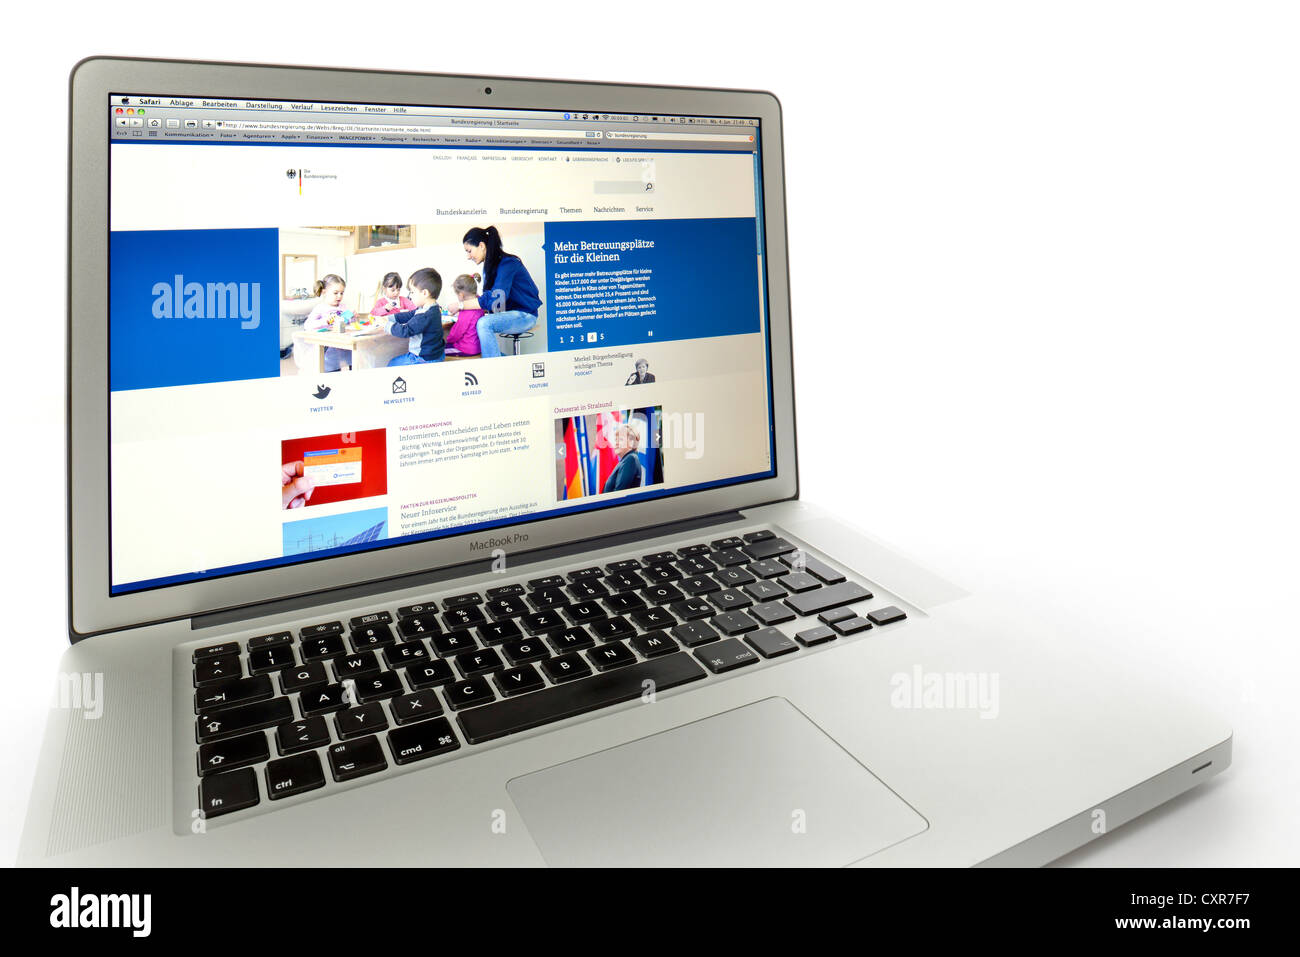 Bundesregierung, Federal Government, website displayed on the screen of an Apple MacBook Pro - Stock Image